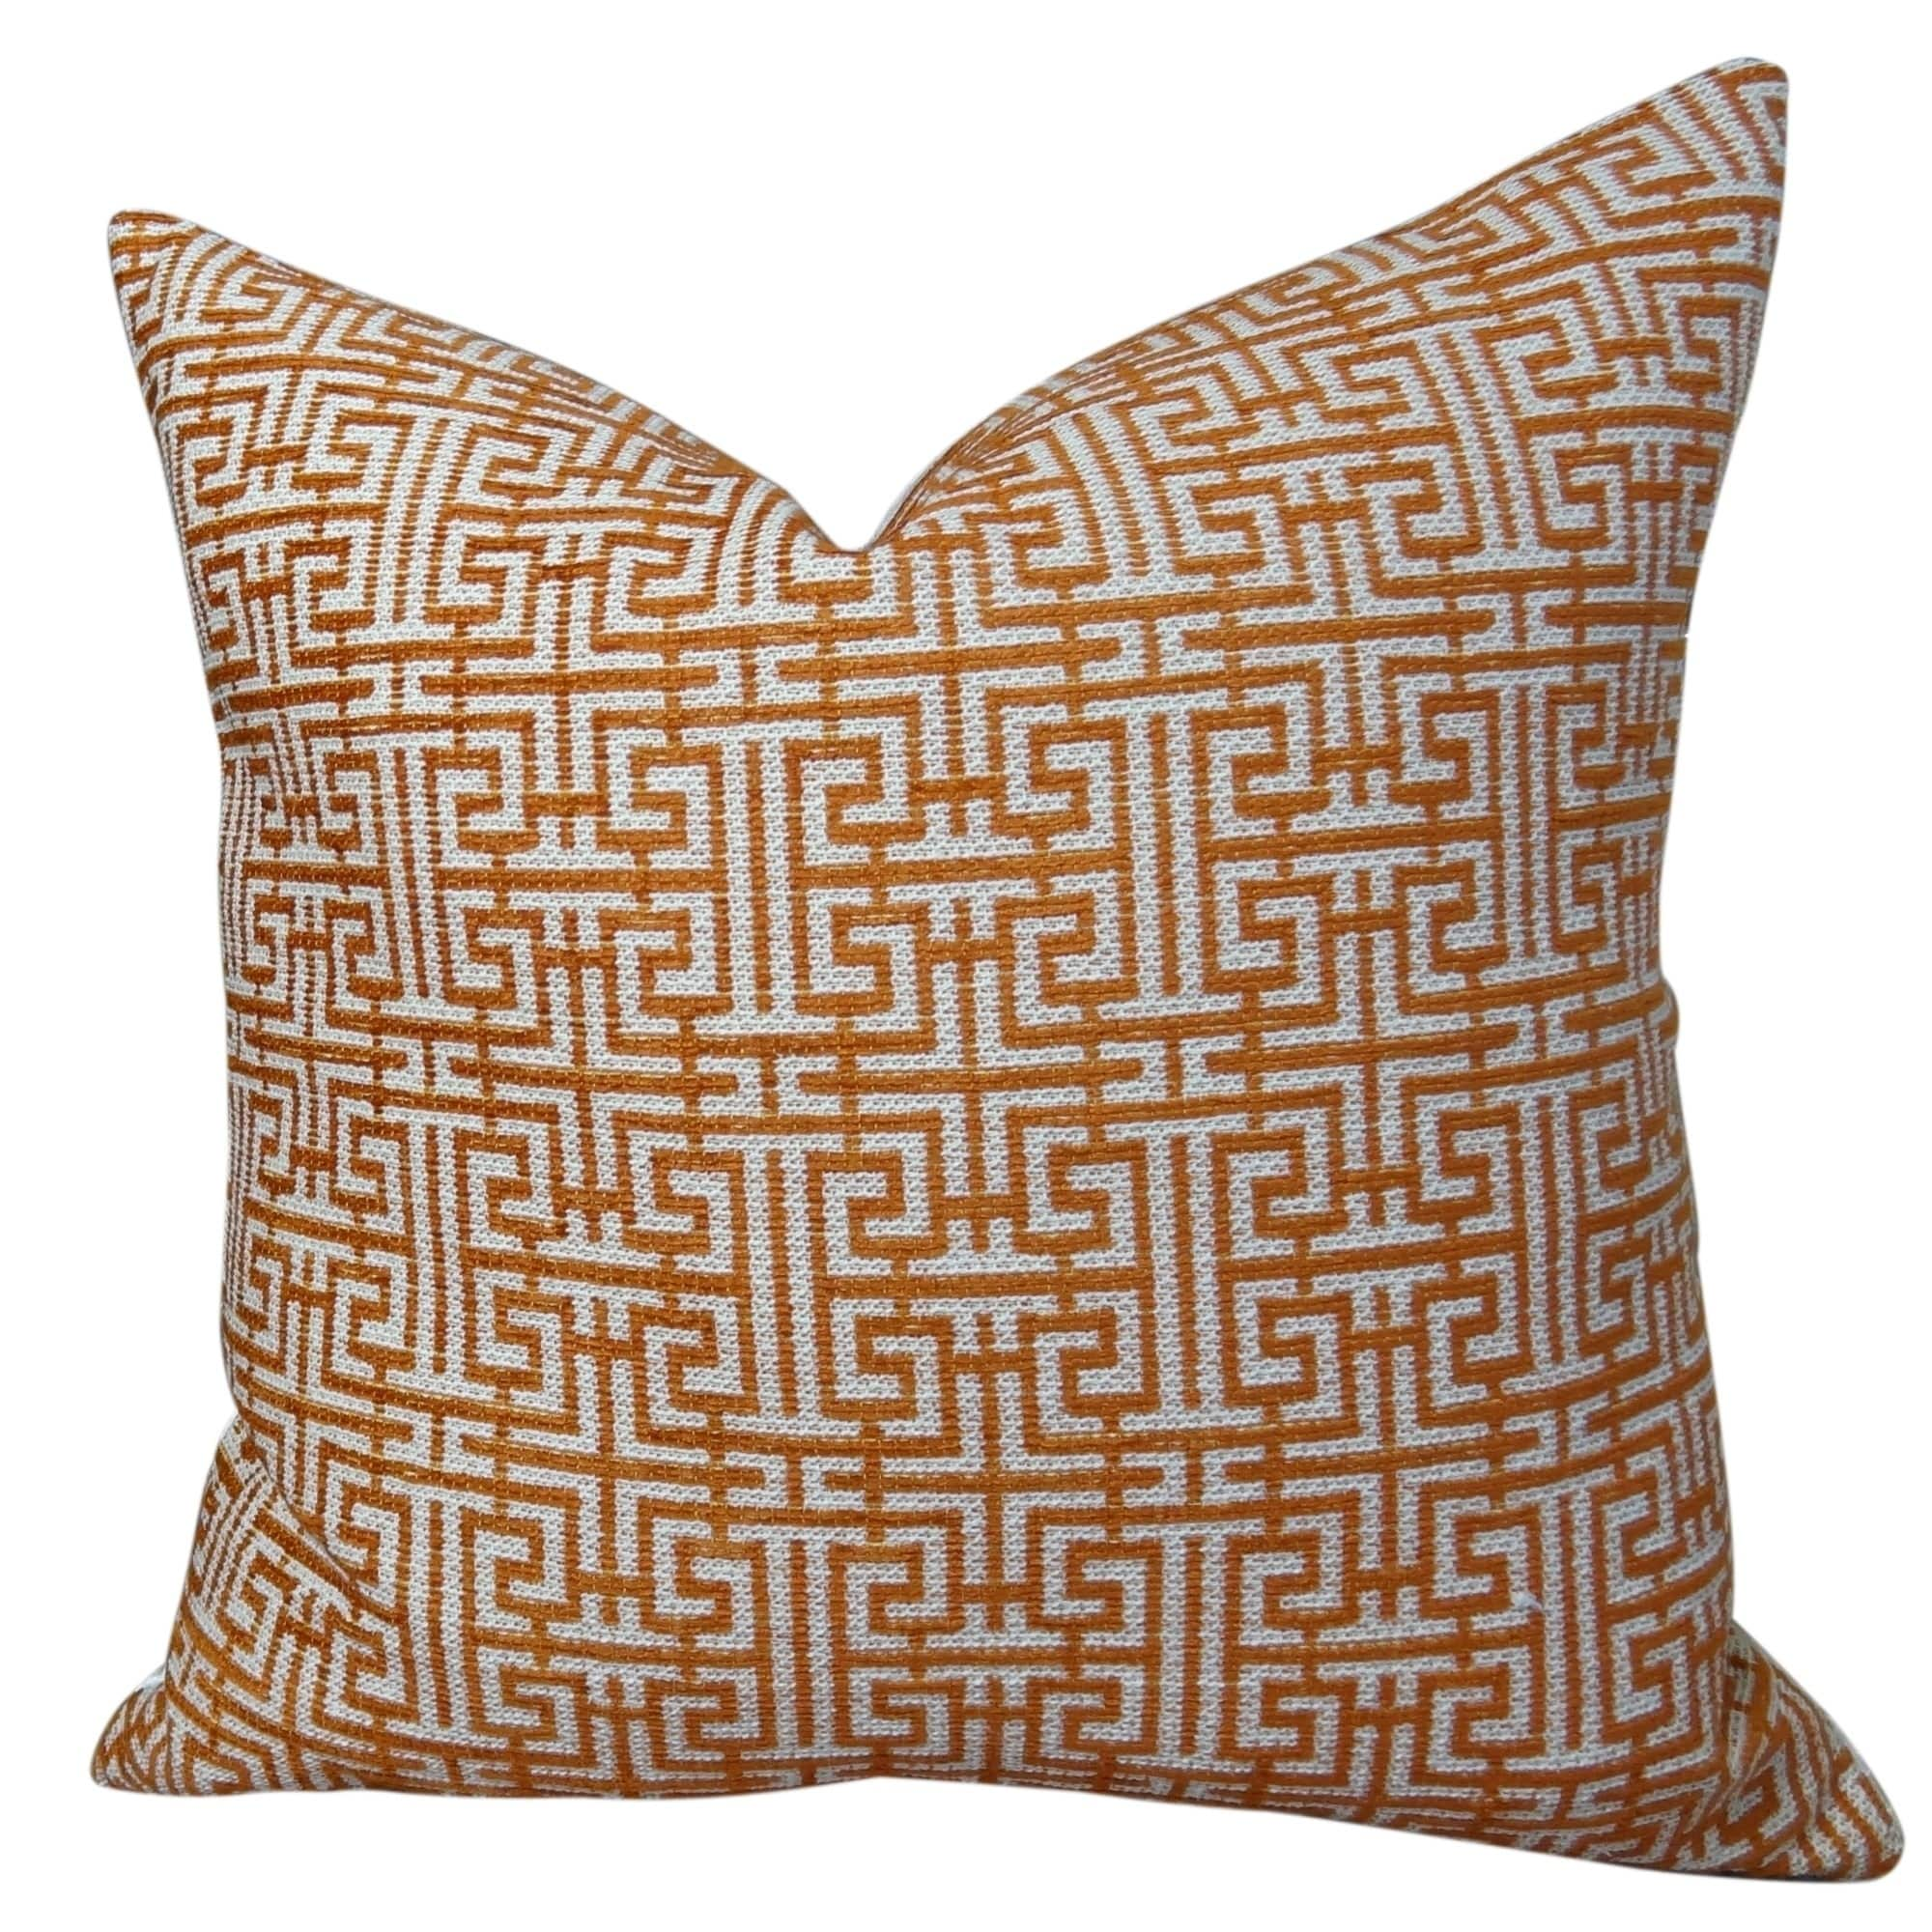 outdoor office car decor best tufted orange cushion inspiration depot home pillows lumbar chair for by tips support pillow custom